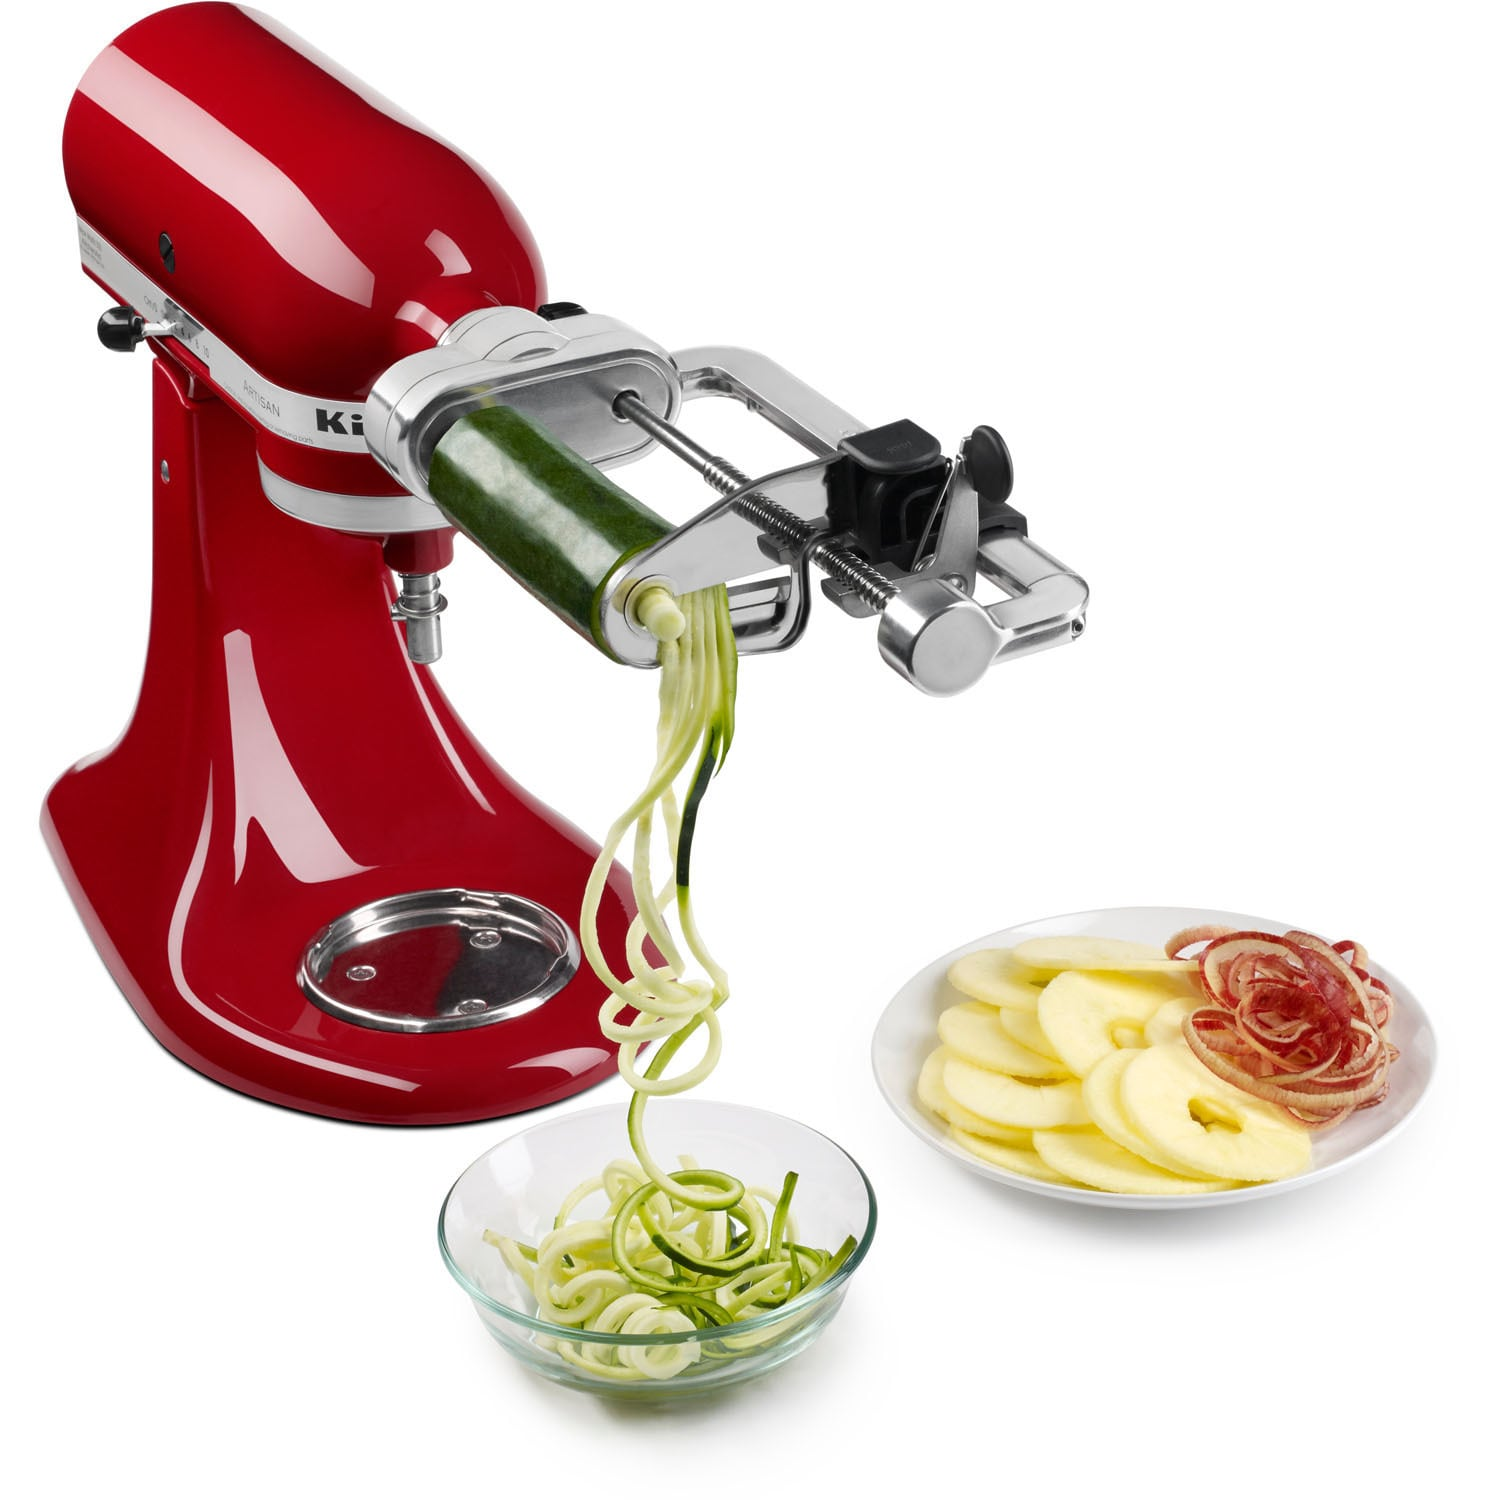 kitchenaid kitchen have aid must life mixer attachments a grande